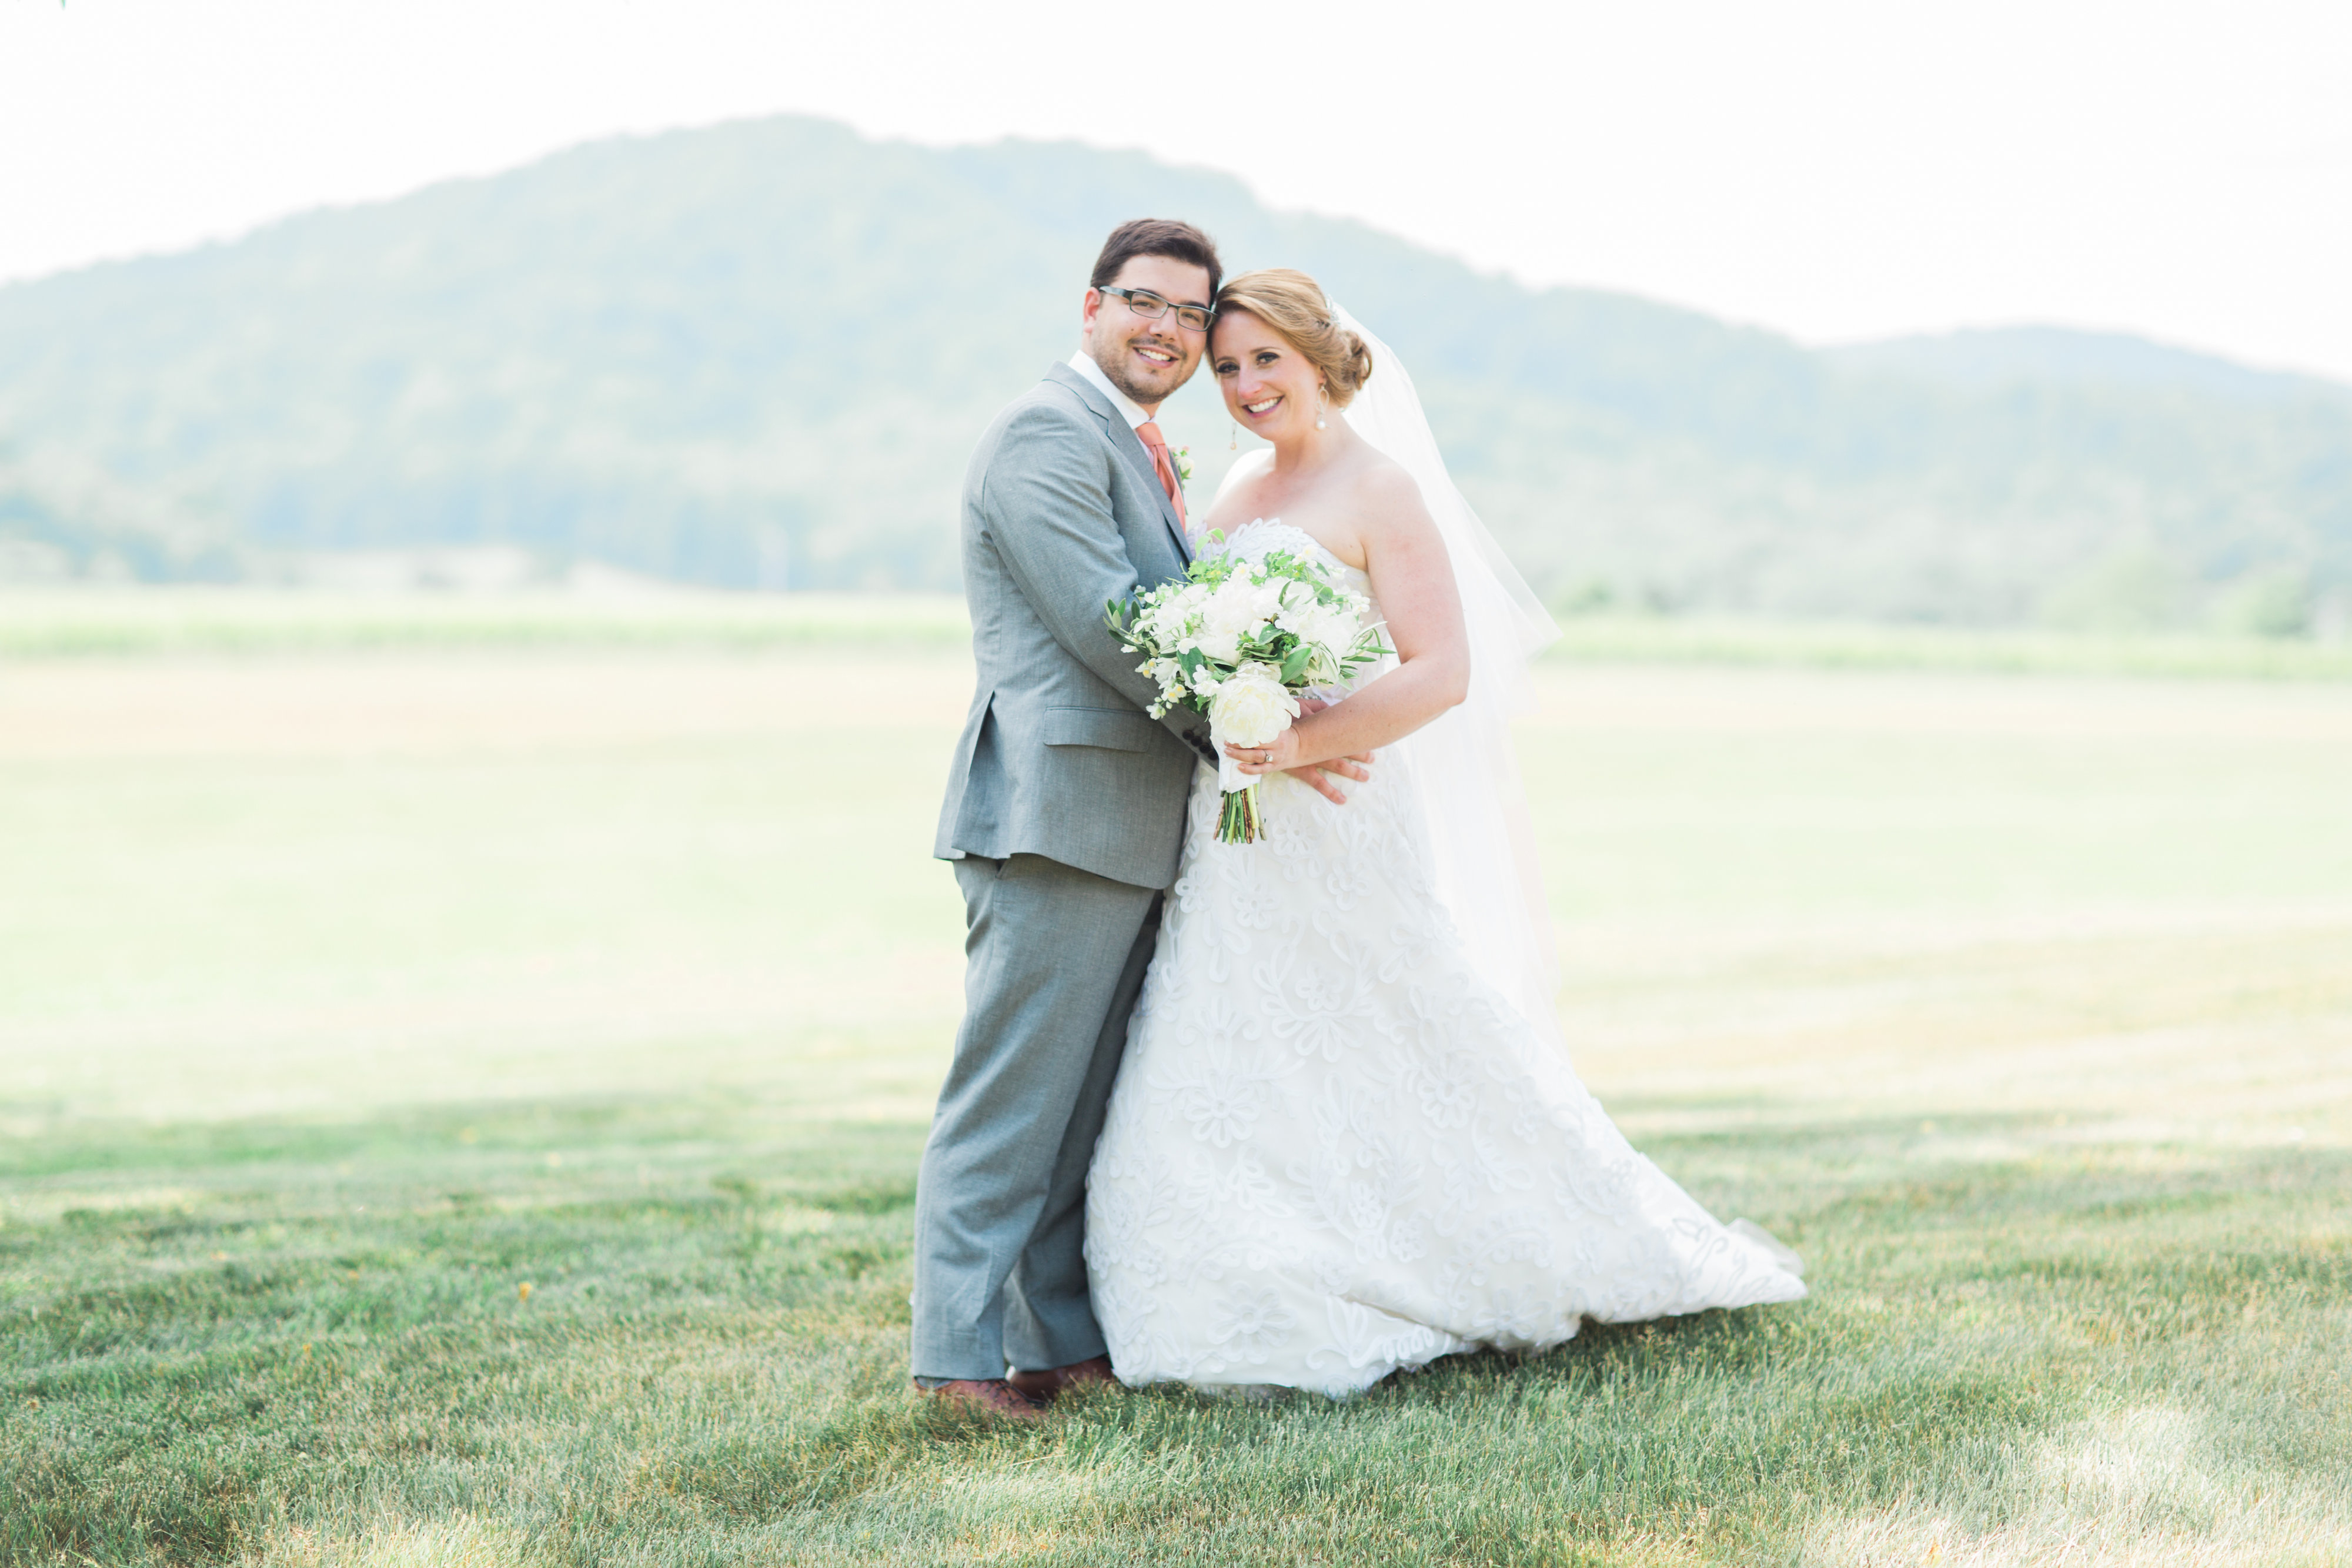 View More: http://abbygracephotography.pass.us/fratangelo-wedding